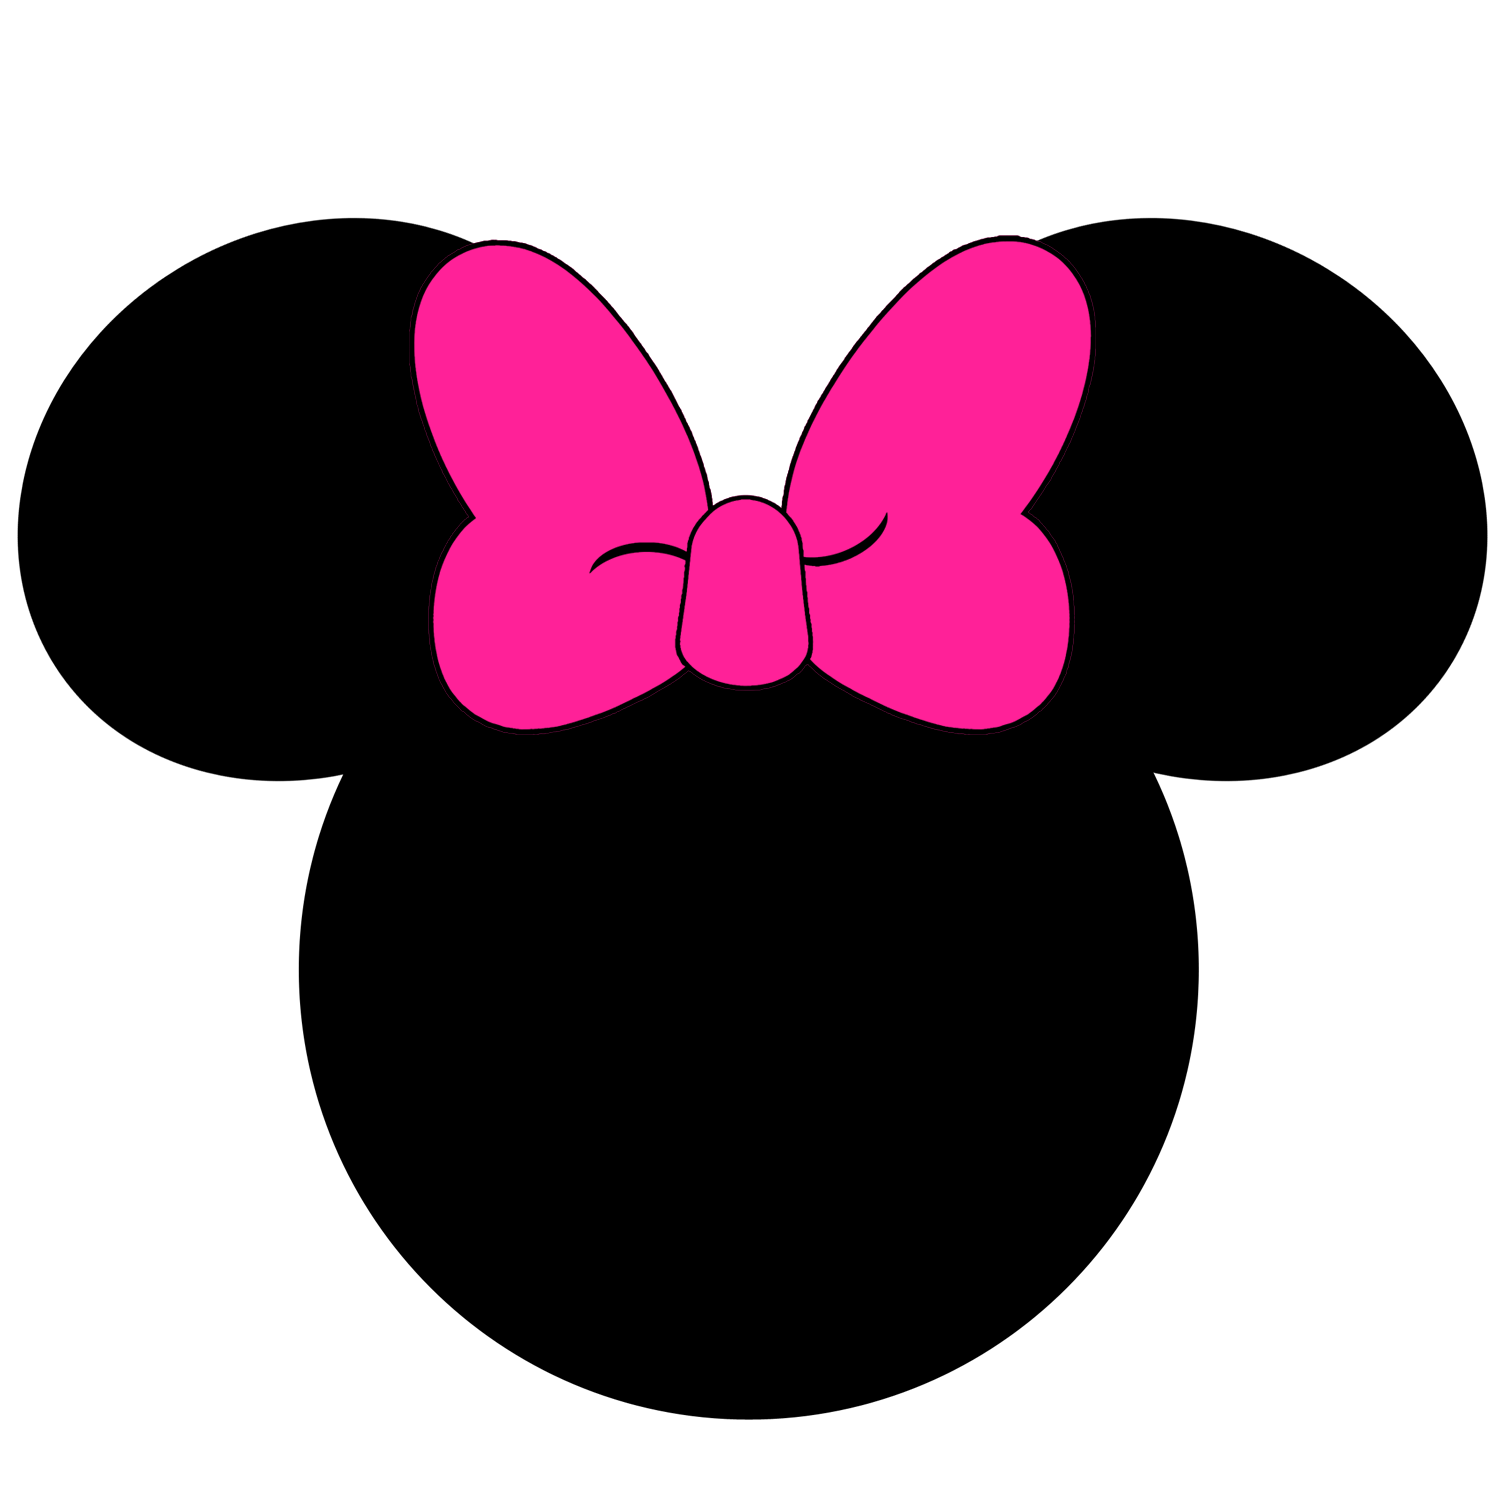 Silhouette minnie mouse at getdrawings free for personal use 1500x1500 23 images of minnie mouse ears silhouette template maxwellsz